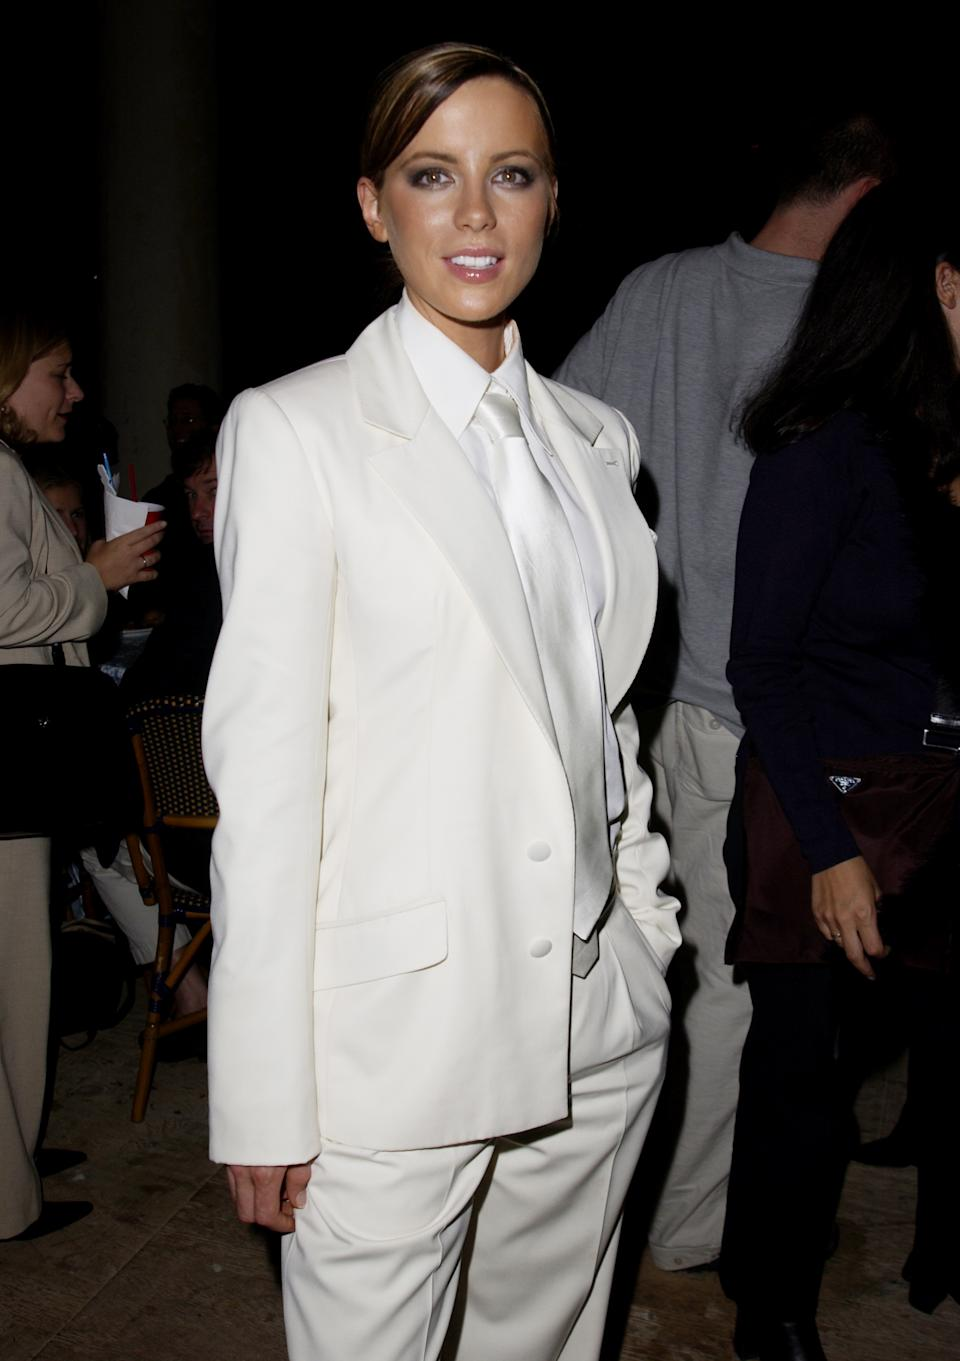 """Kate Beckinsale at the 2001 premiere of """"Serendipity."""" (Photo by J. Vespa/WireImage)"""